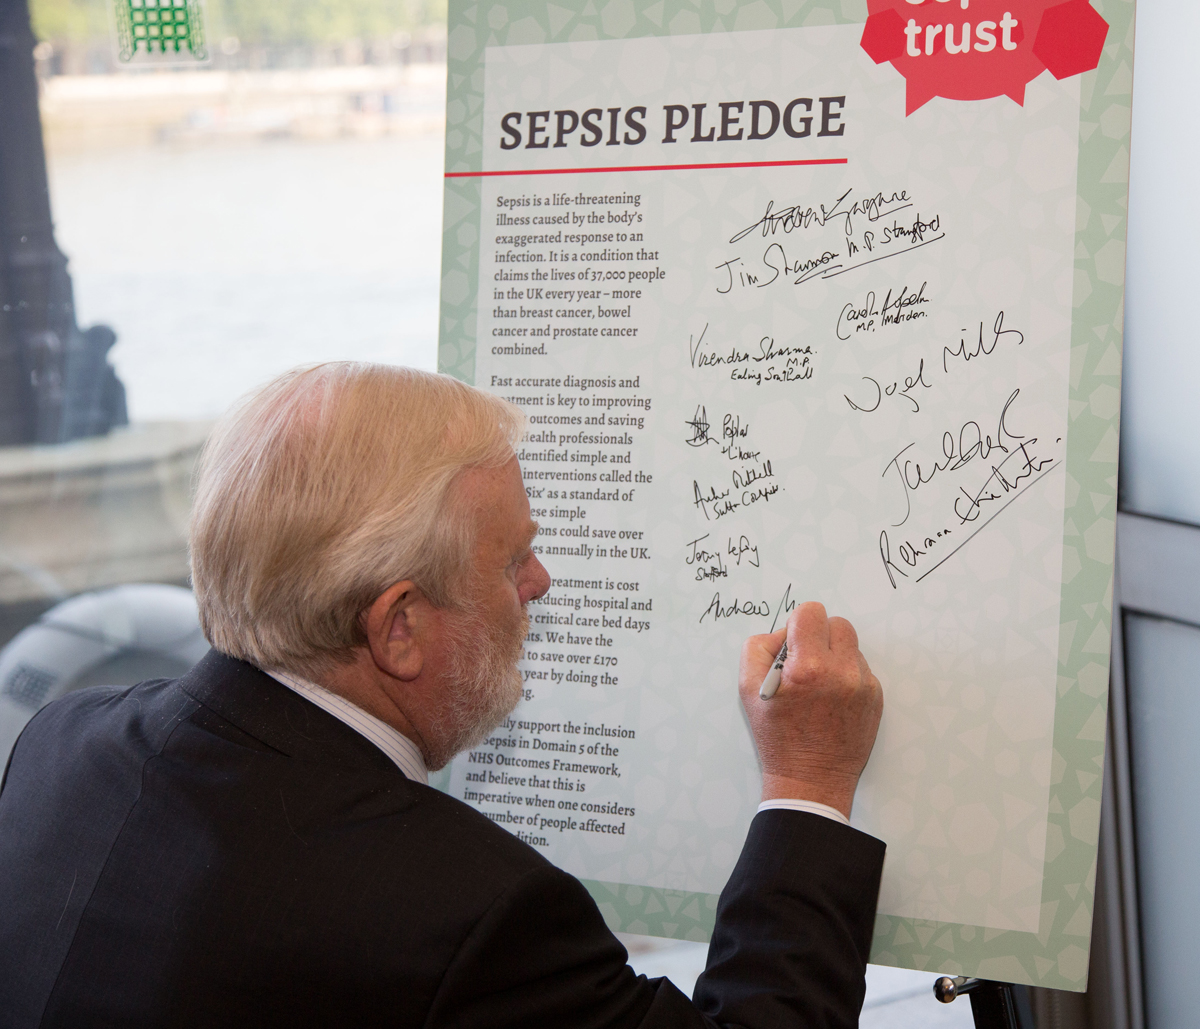 Andrew Miller MP signs pledge supporting fight against Sepsis